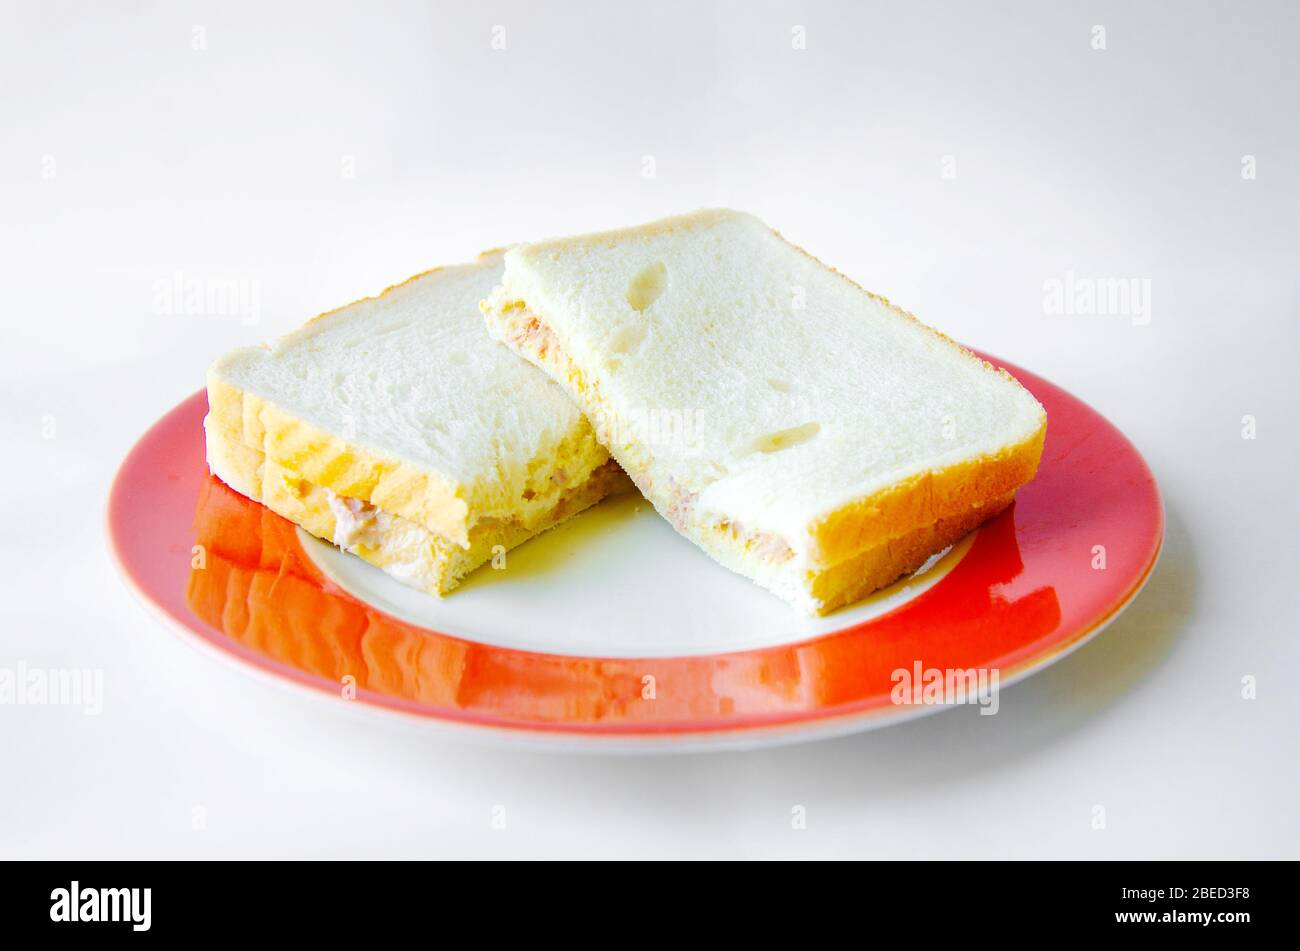 a-homemade-tuna-and-mayonnaise-sandwich-on-a-plate-shot-against-a-while-background-2BED3F8.jpg